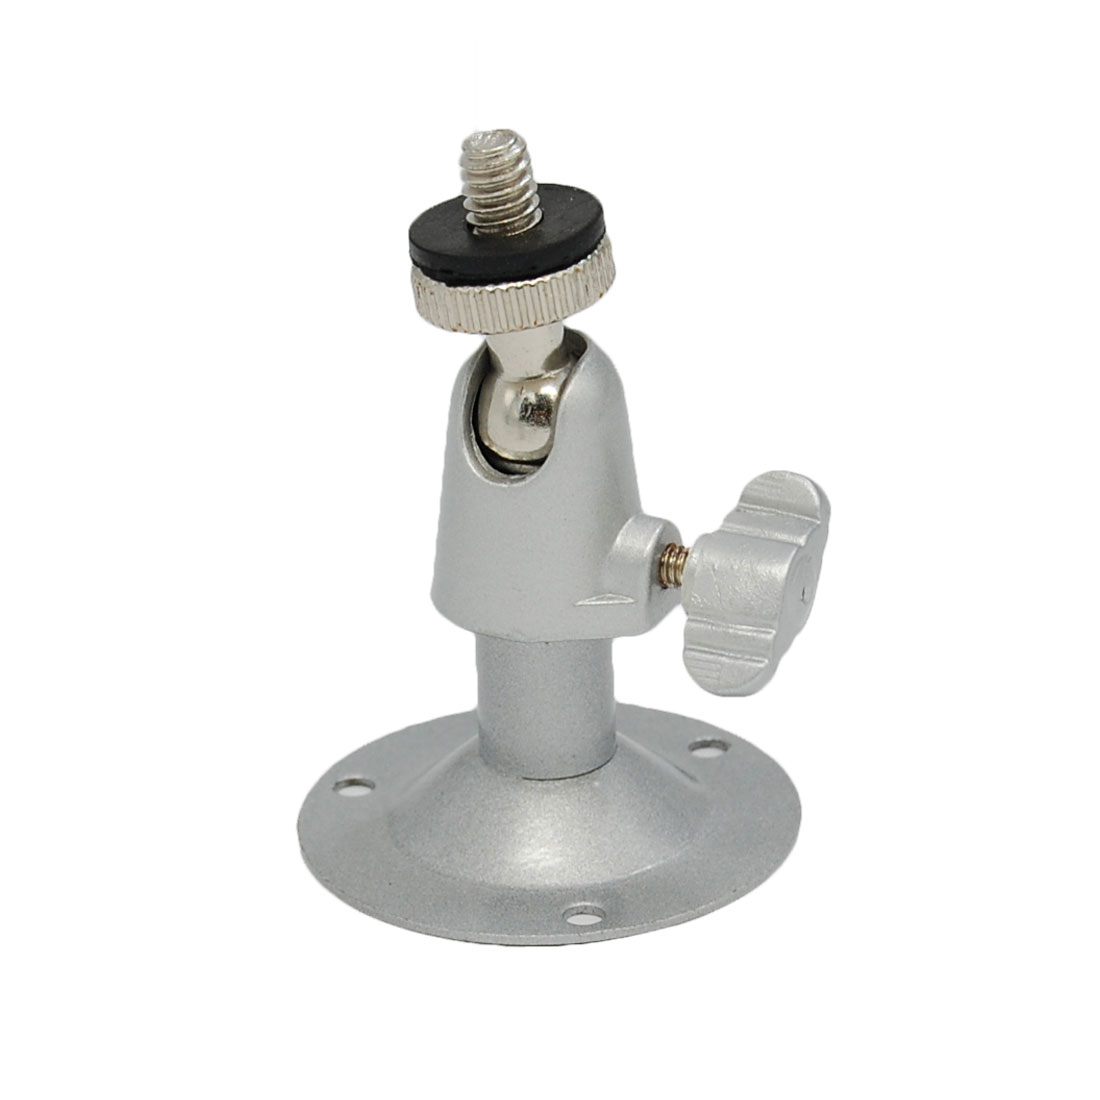 Mini CCTV DVR Camera Wall Ceiling Mount Bracket Stand